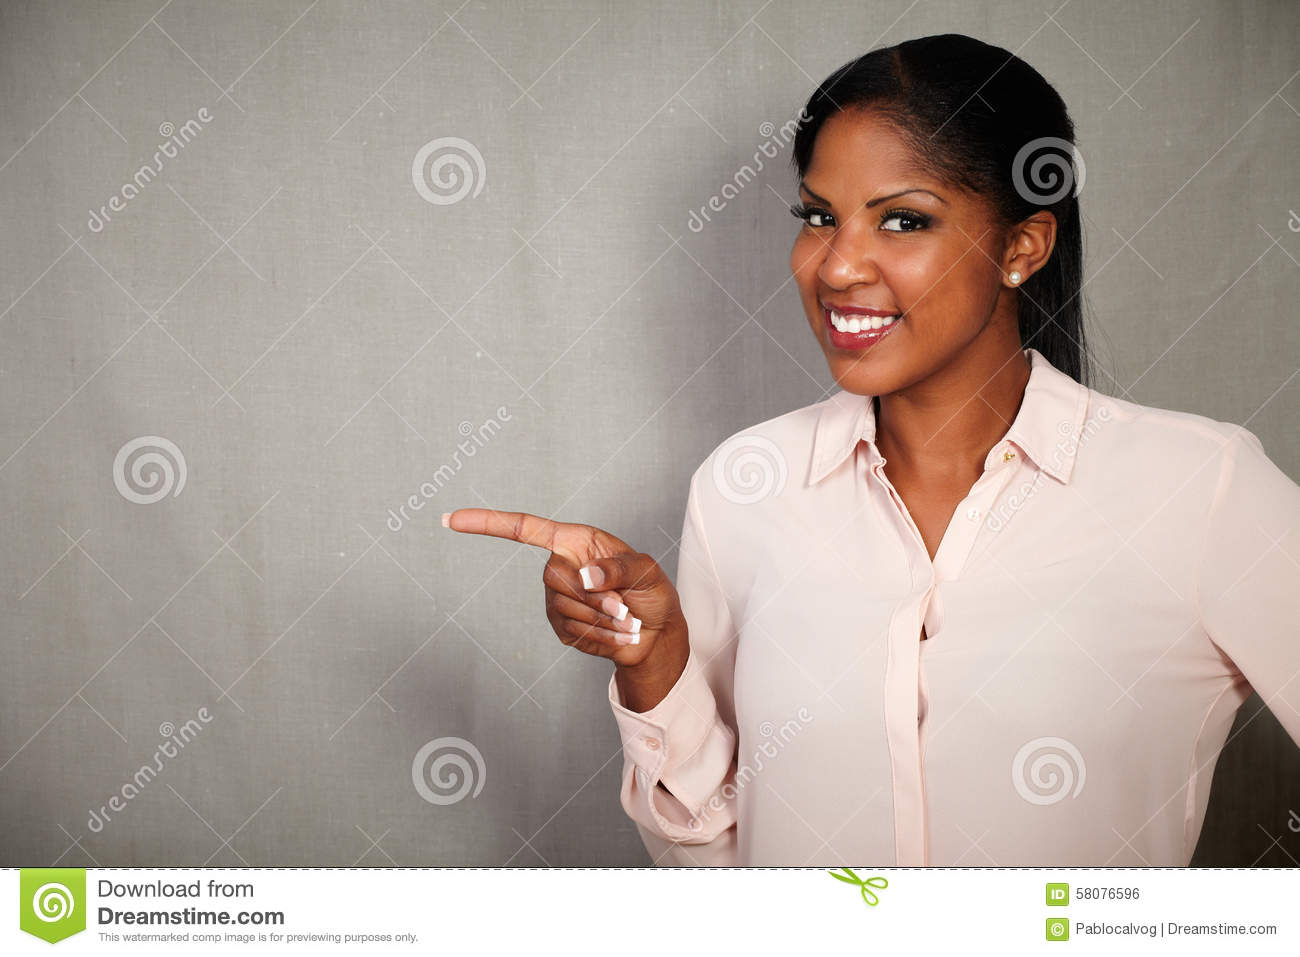 Young african woman pointing while smiling